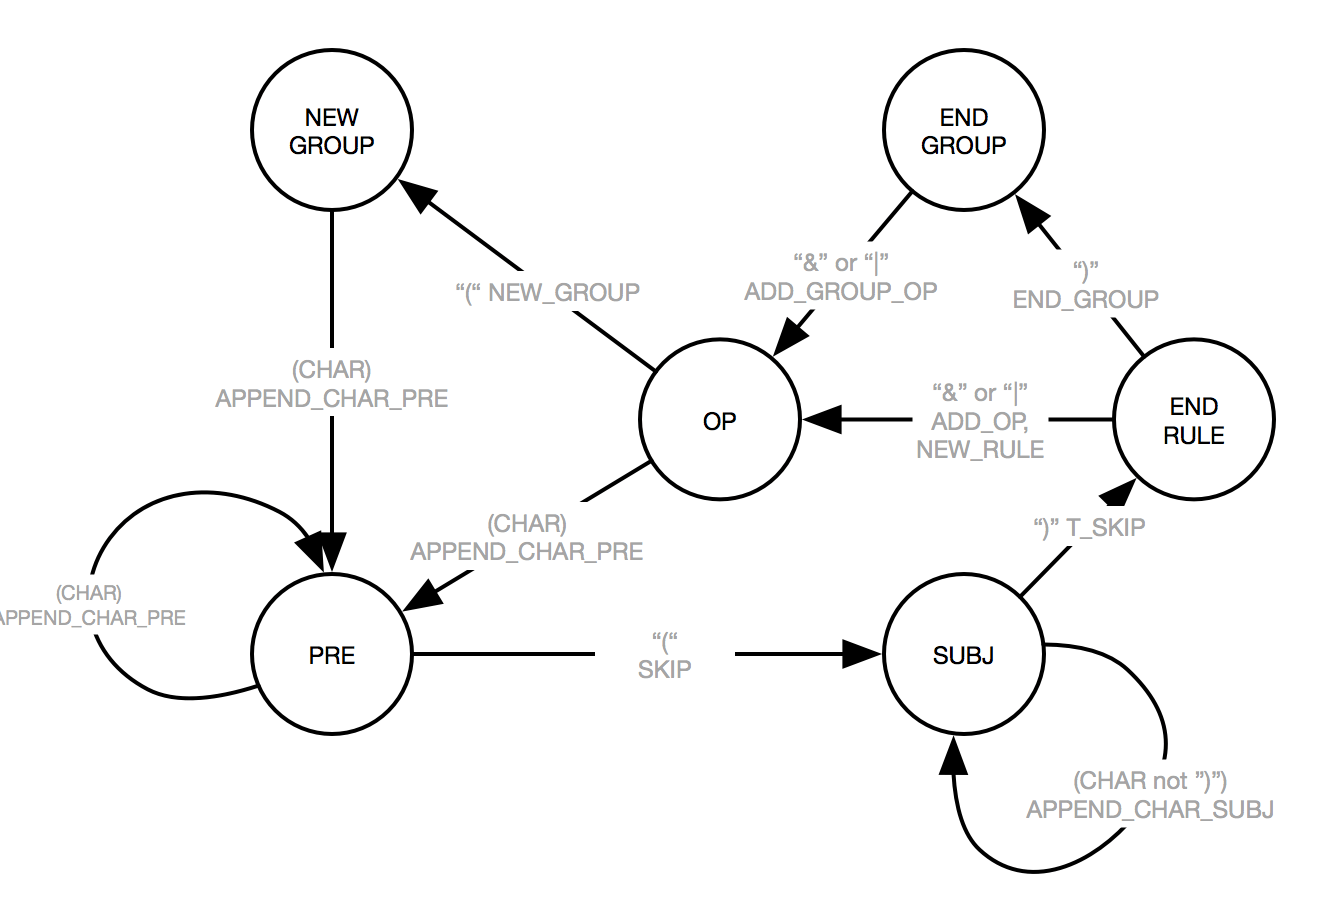 How To Draw State Diagram